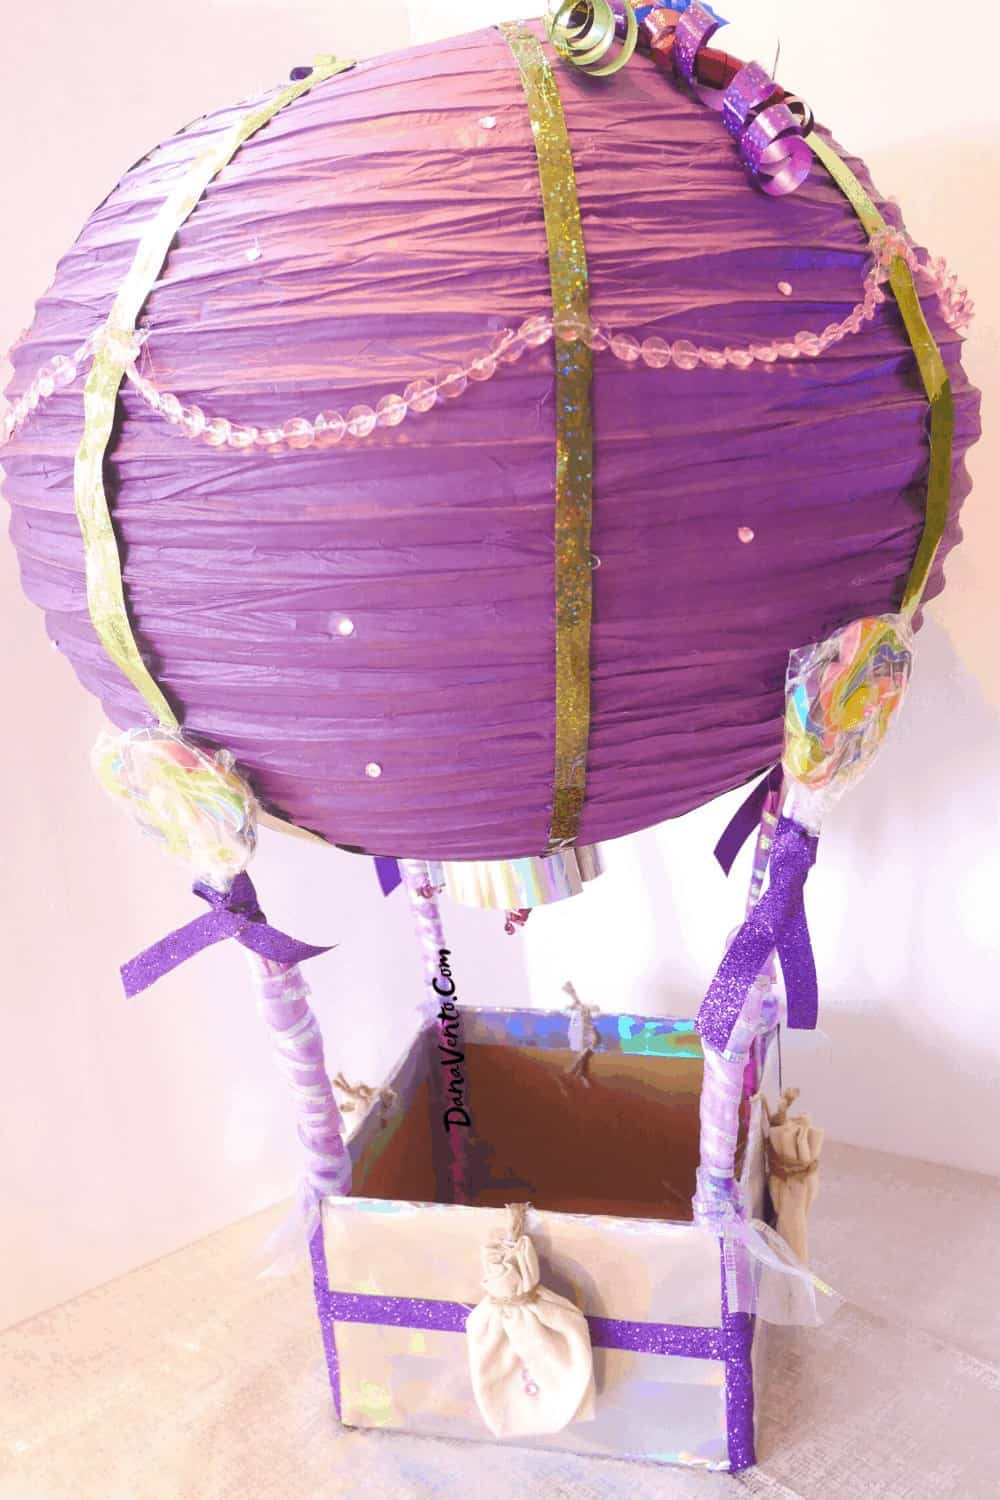 paper lantern out of a hot air balloon